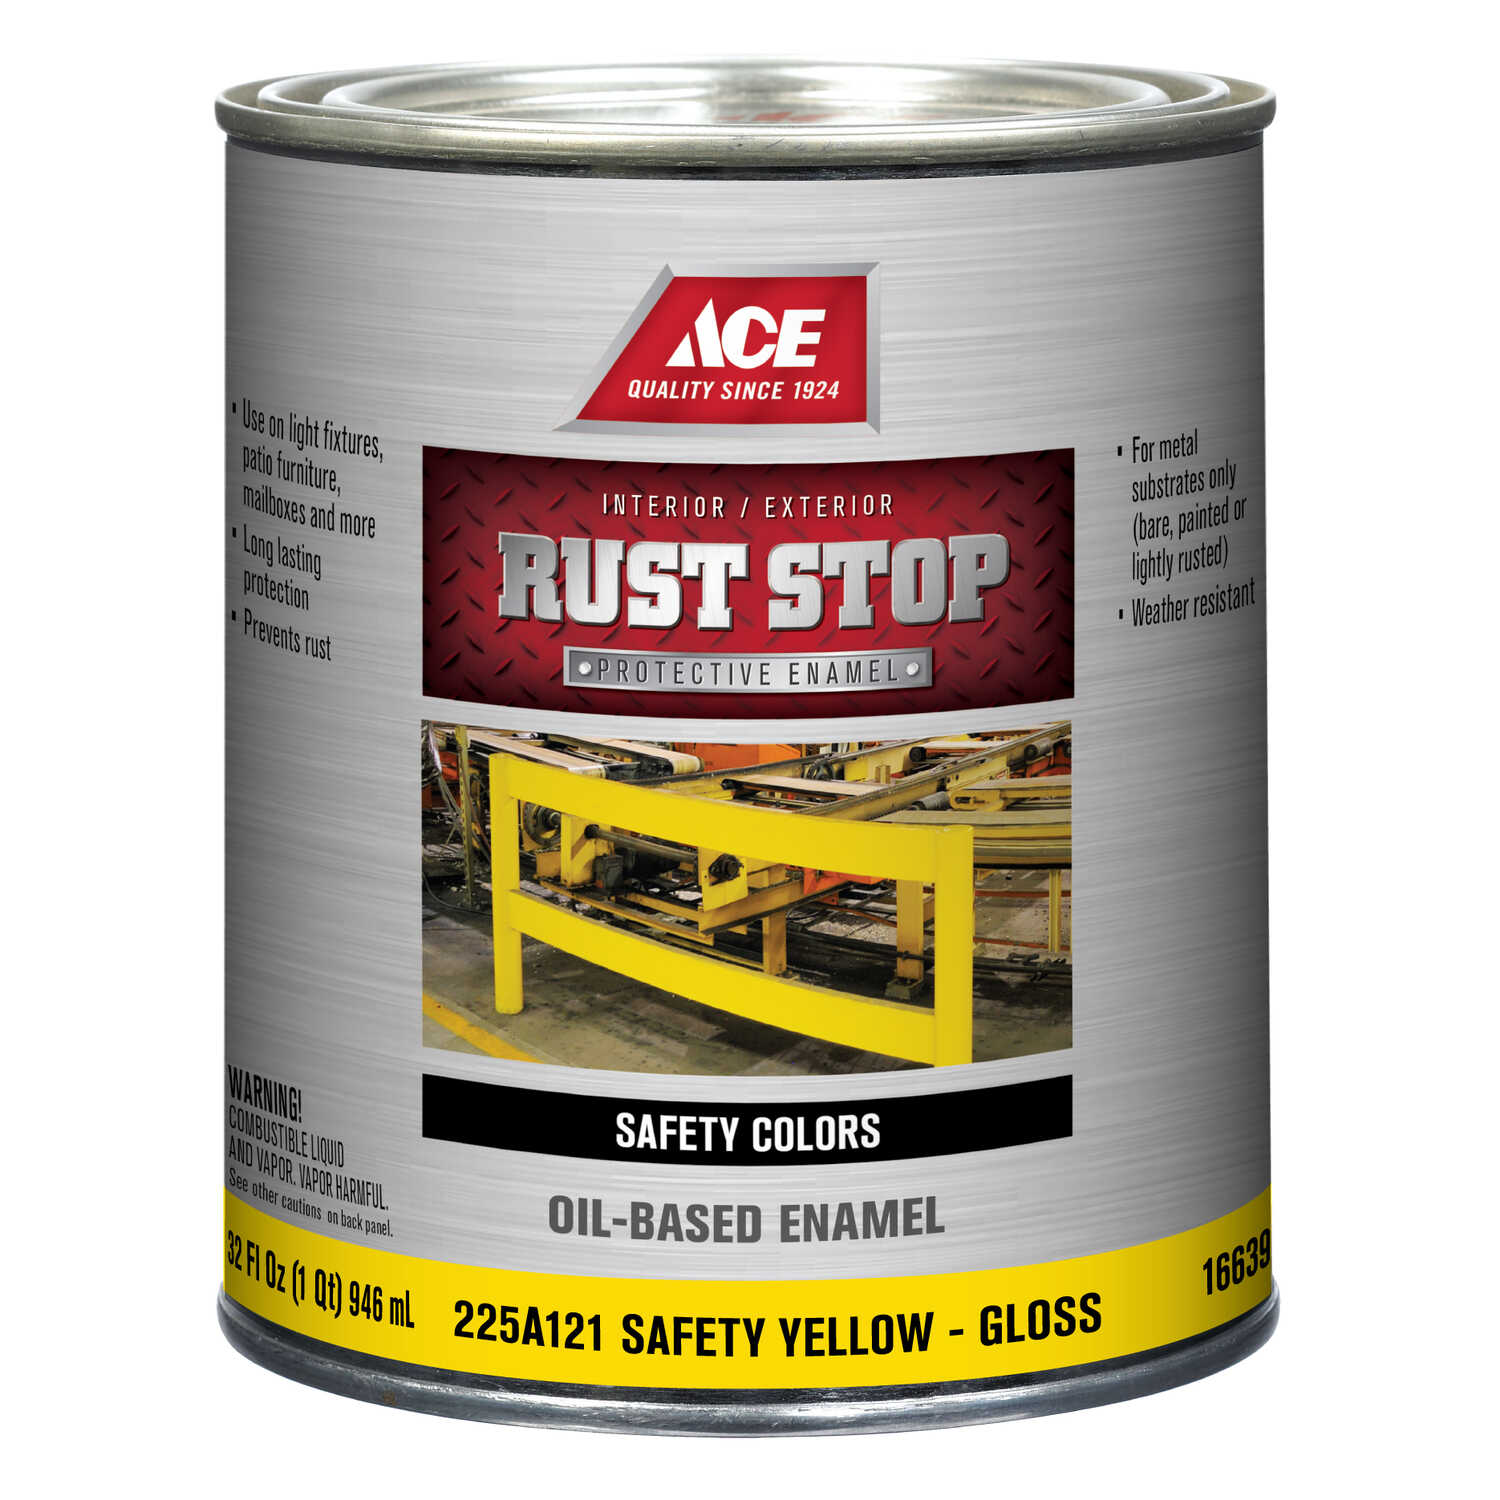 Ace  Rust Stop  Interior/Exterior  Gloss  Safety Yellow  Rust Prevention Paint  1 qt. Indoor and Out